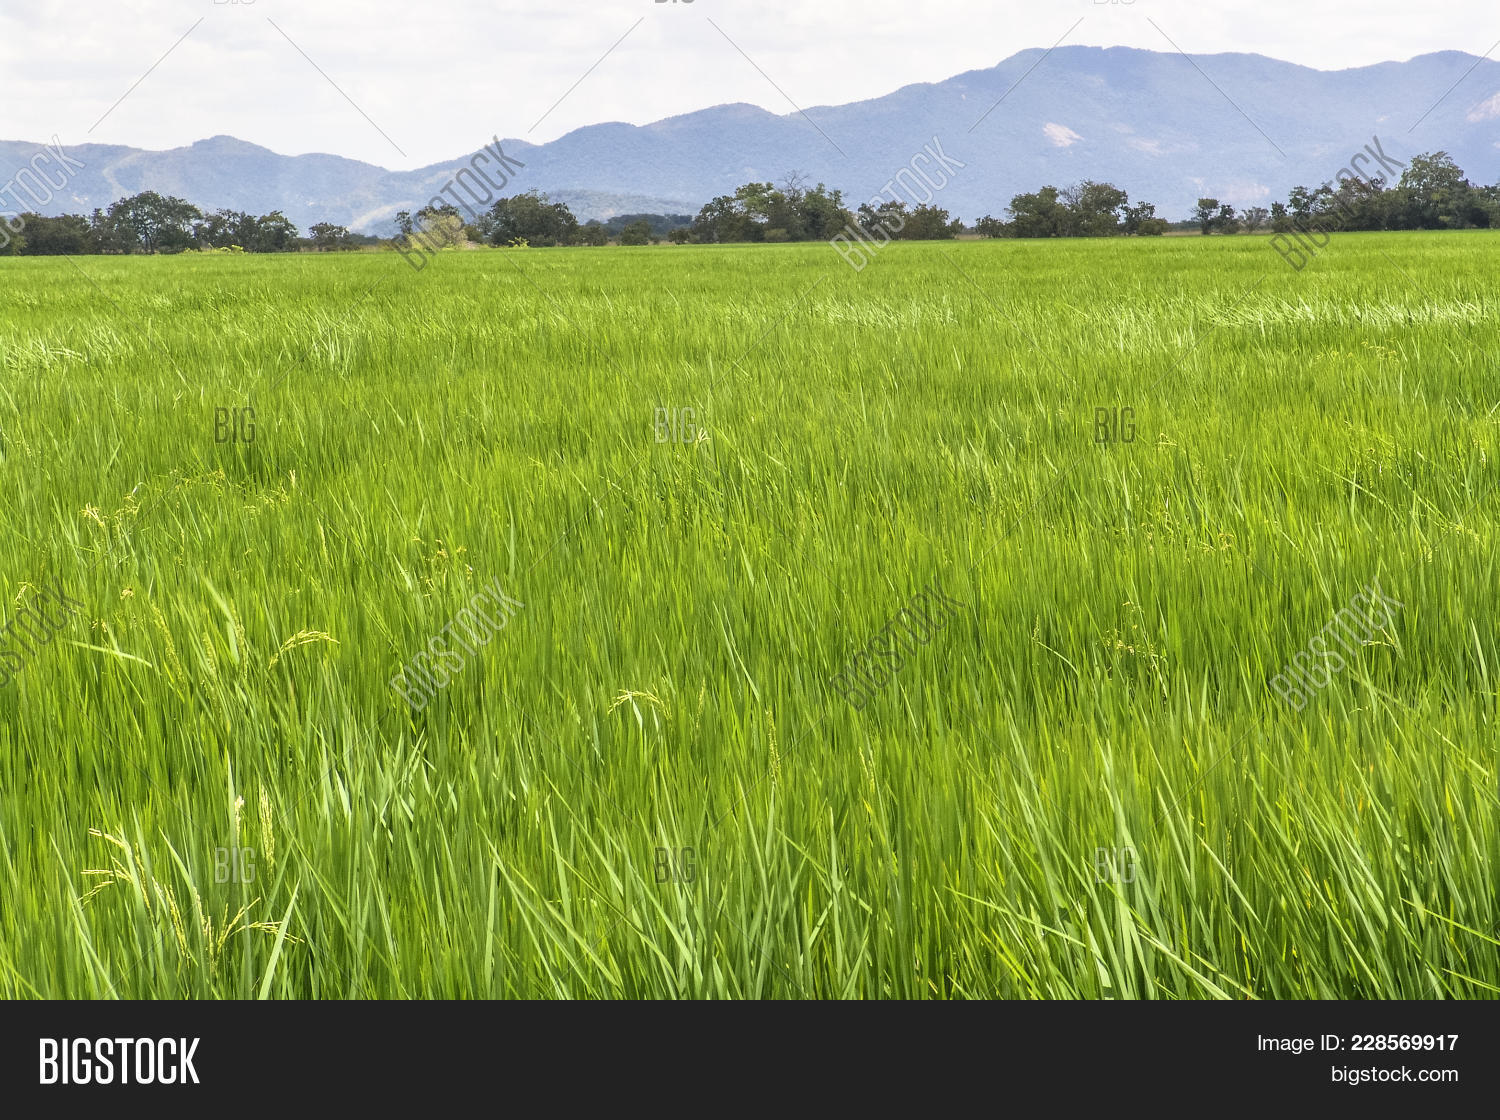 Farm rice field roraima powerpoint template farm rice field agricultural powerpoint template 60 slides toneelgroepblik Image collections